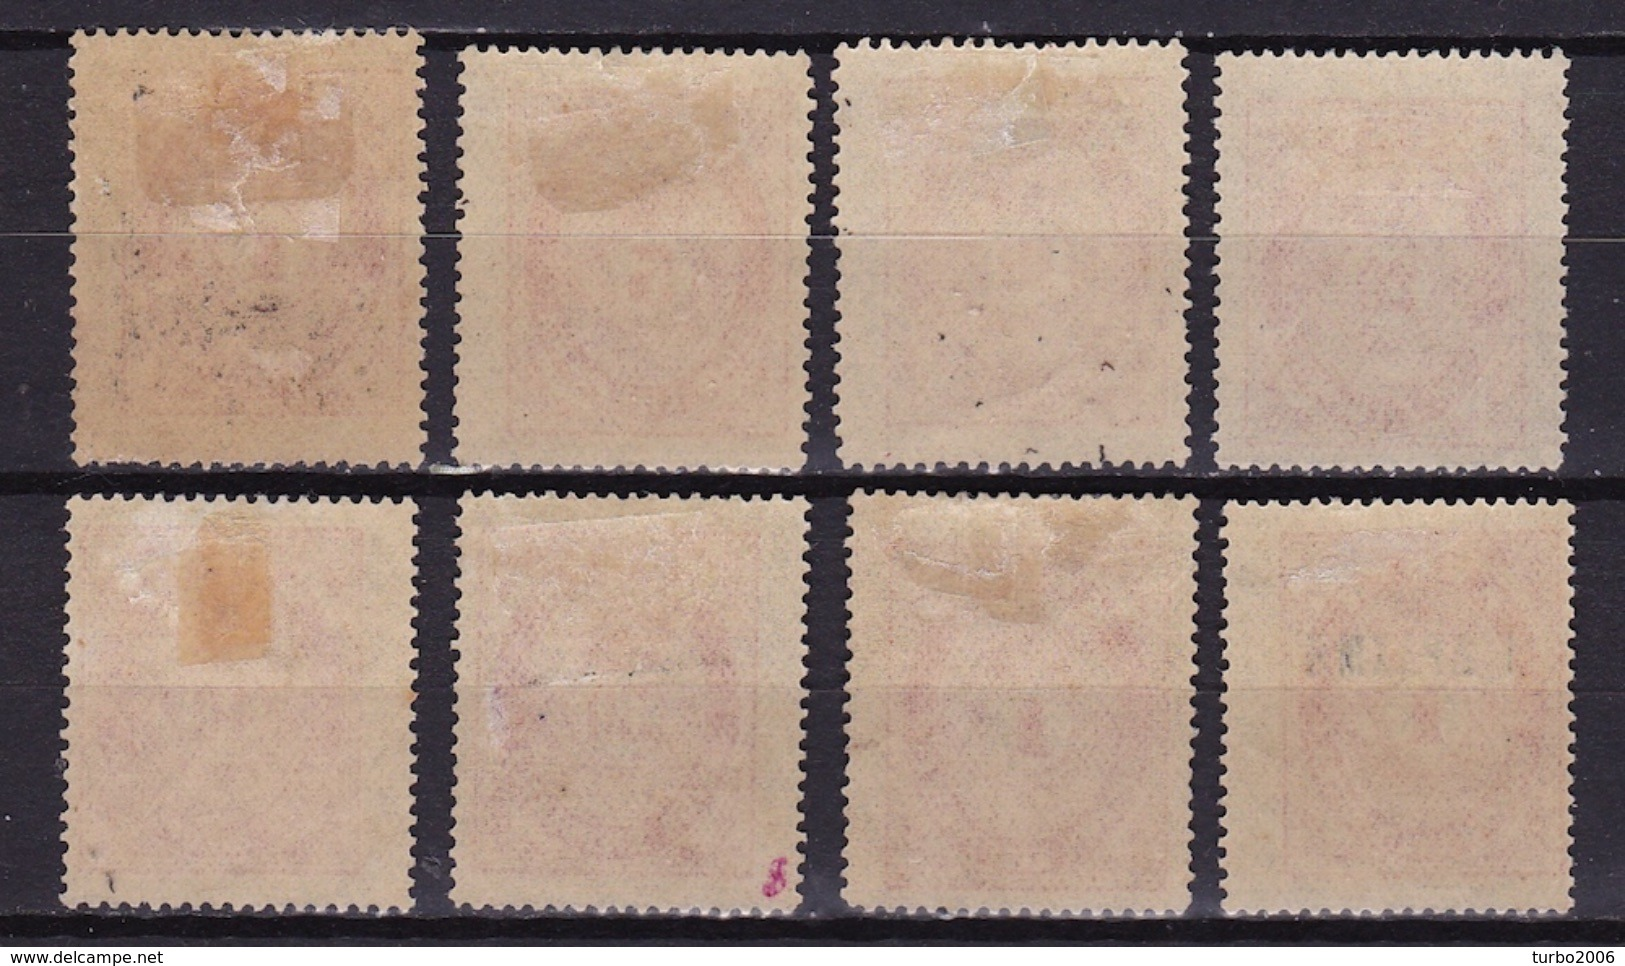 CRETE 1901 Postage Due 8 Values From The Set To 2 Dr. Vl. D 1 / 7 - 9 MH - Kreta